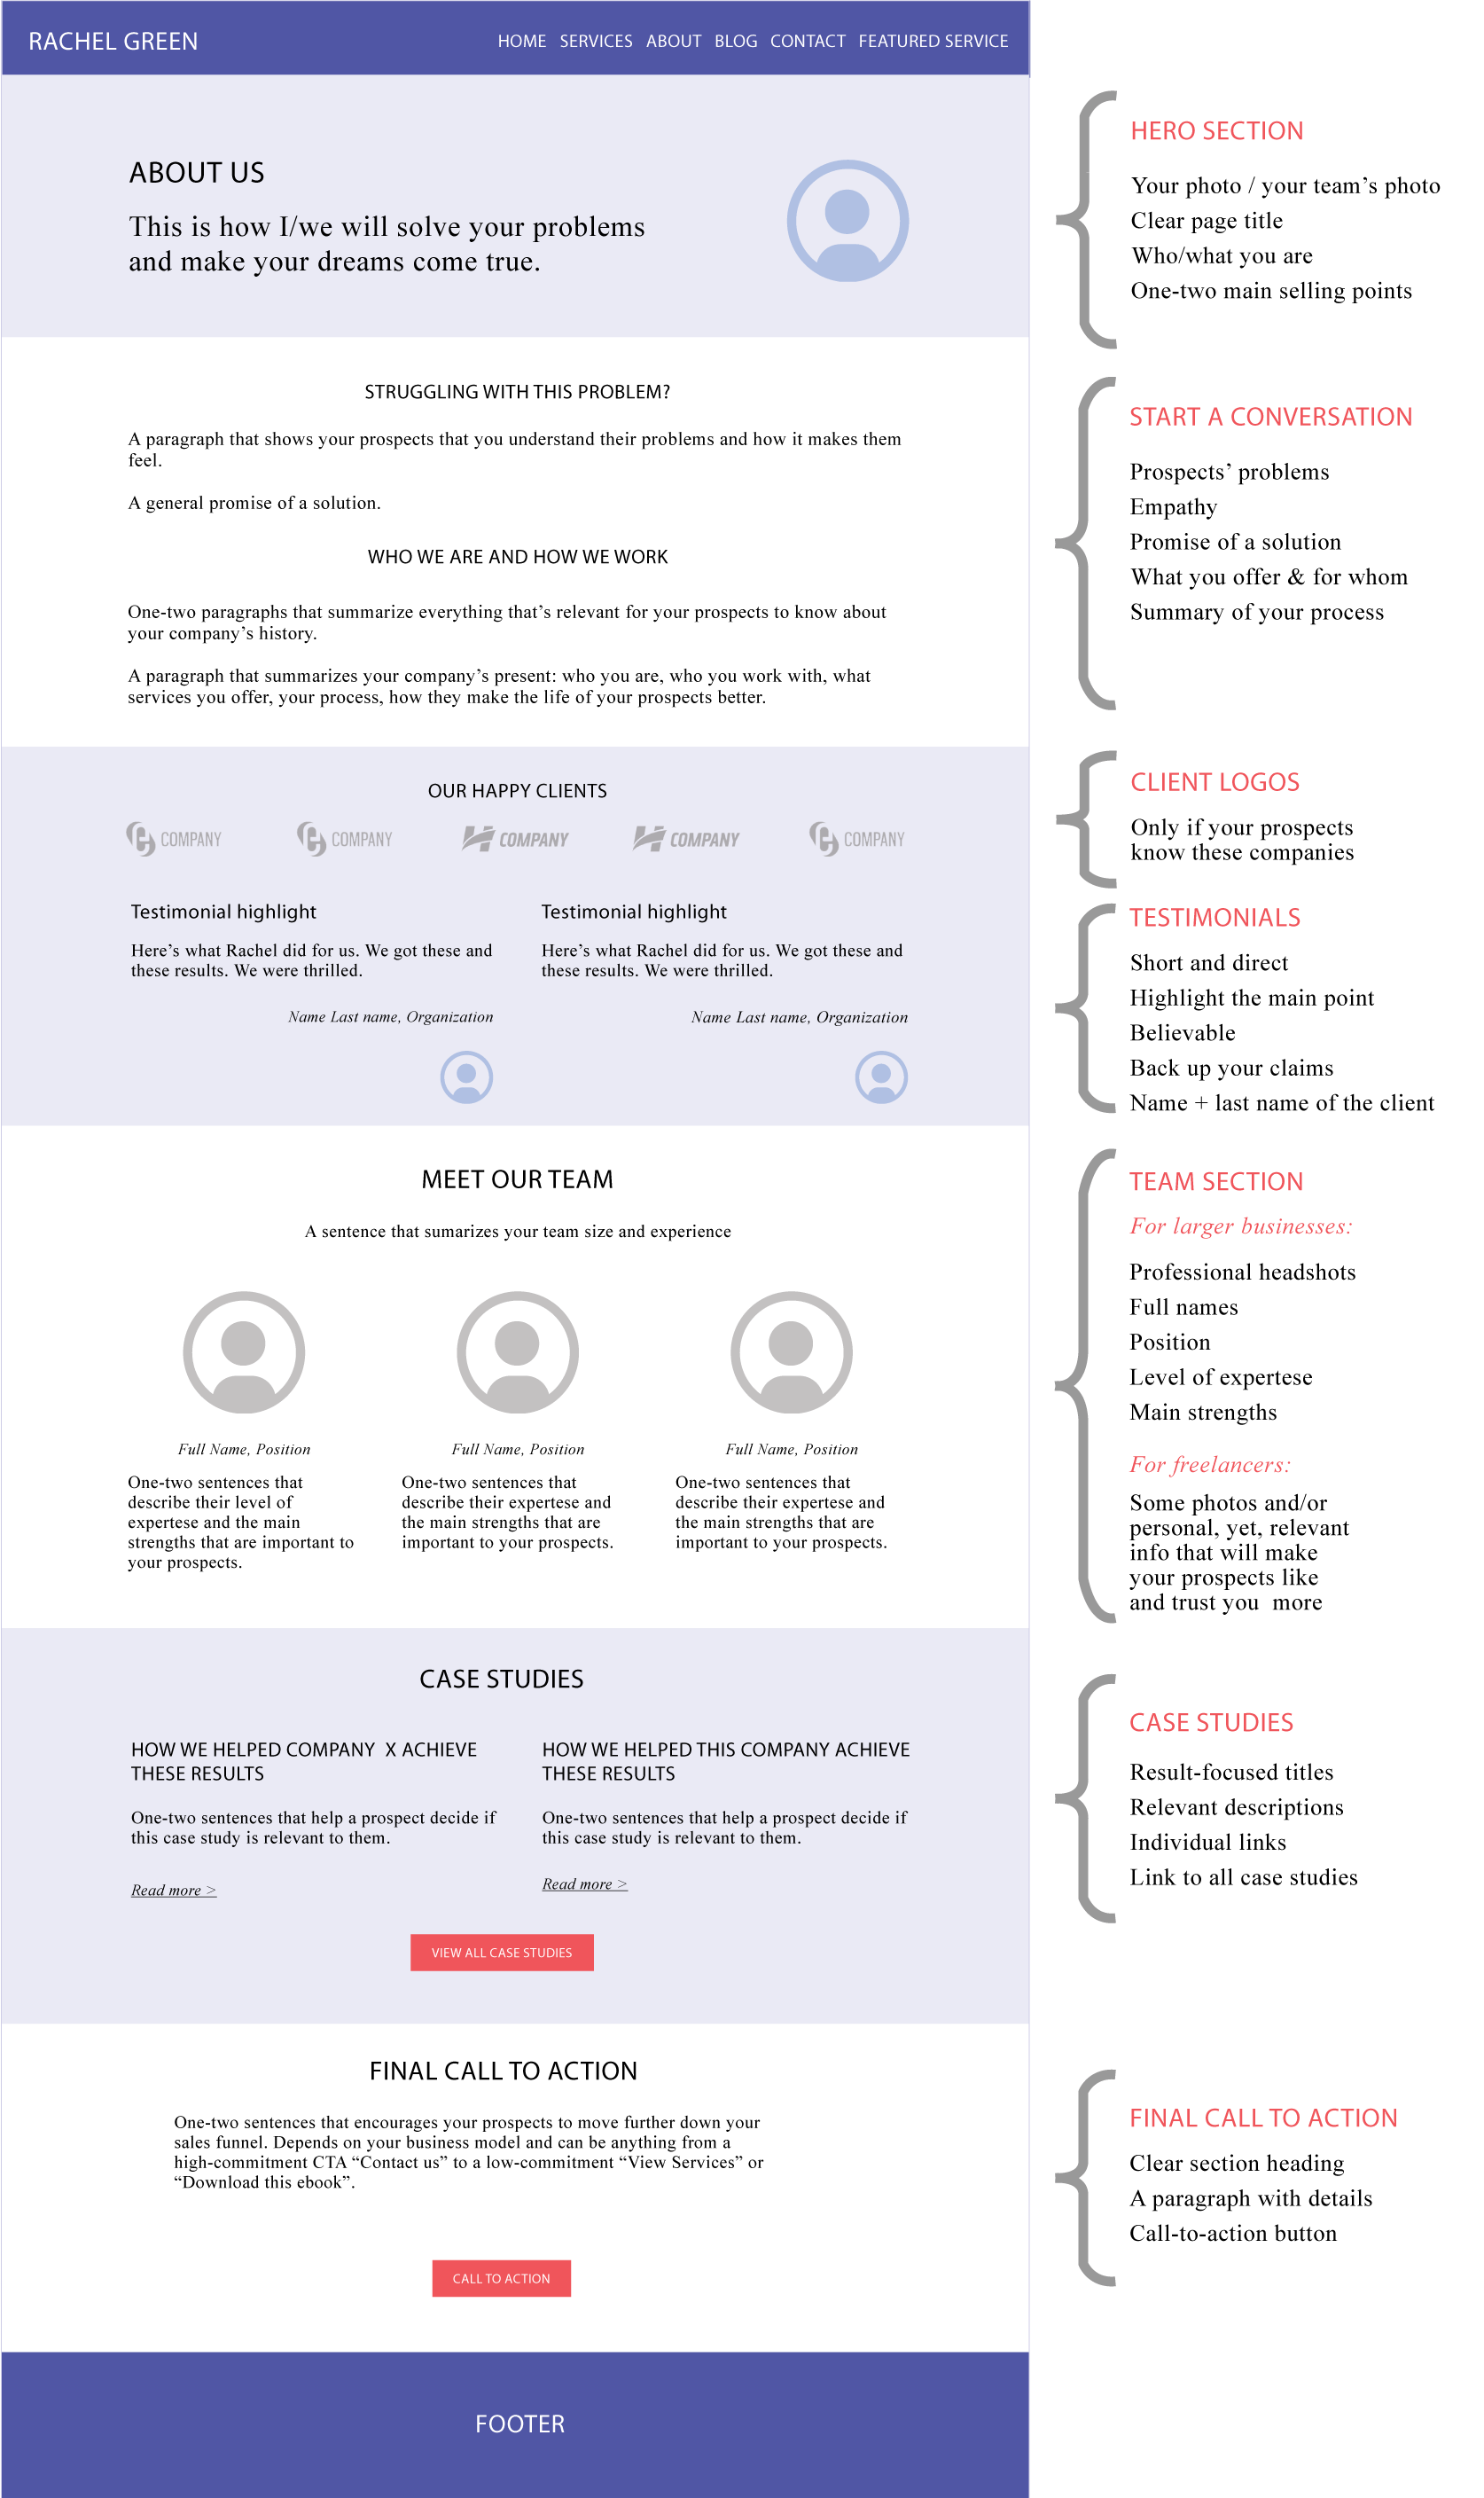 About-us-page-template